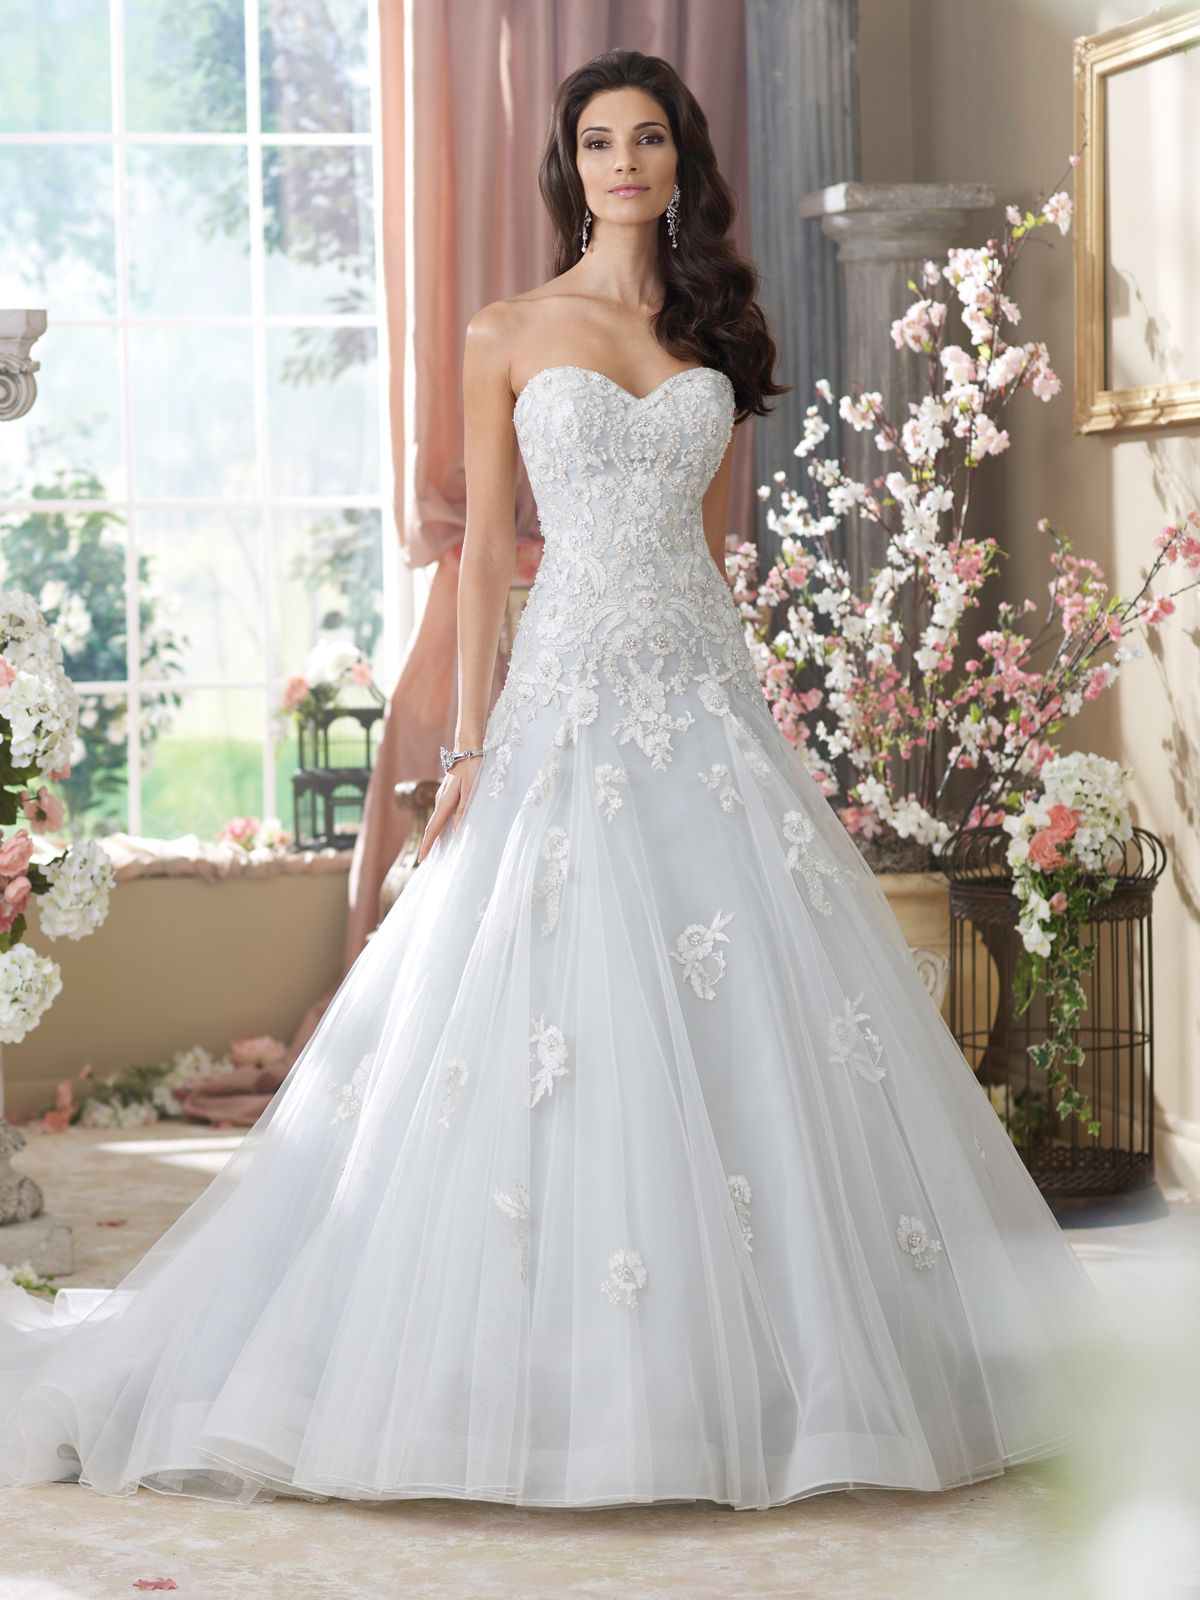 Style No 214212 » David Tutera For Mon Cheri Wedding Dresses 2014 And Bridal Gowns: Taffeta Lace Wedding Dress Look No At Reisefeber.org